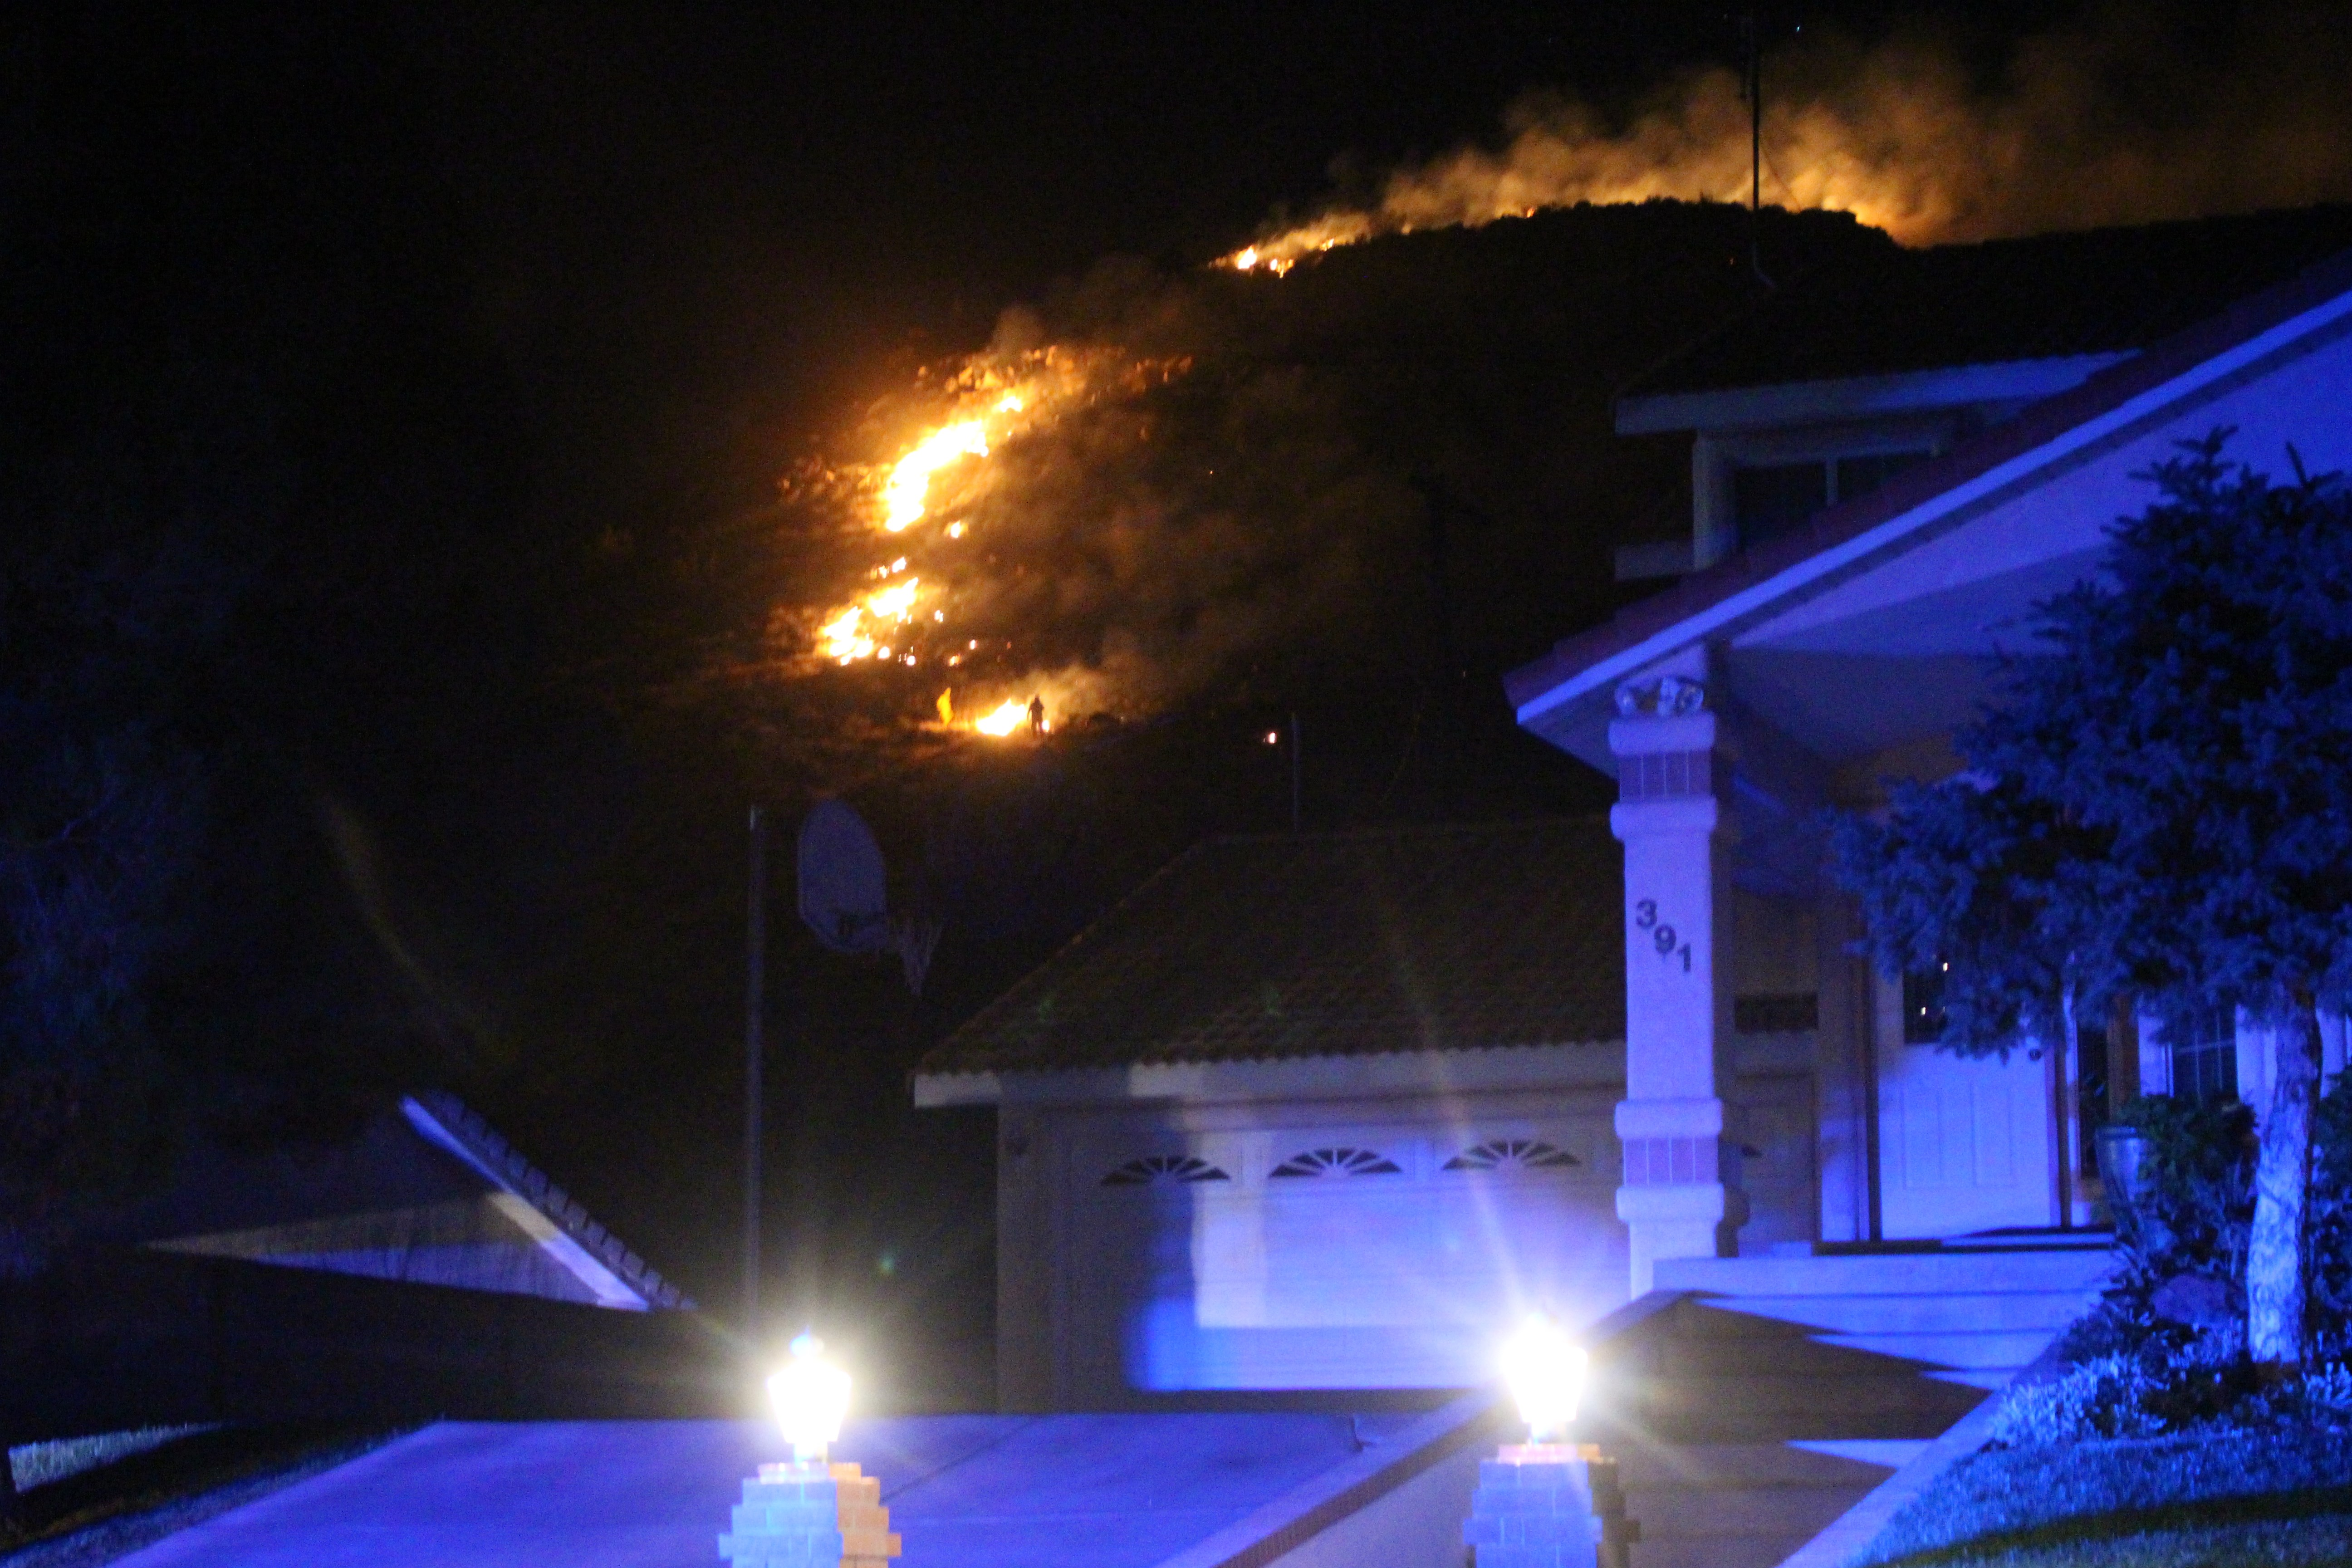 An early morning fire that the fire chief said was likely human-caused burned less than 200 feet from some homes on Donlee Drive, St. George, Utah, July 24, 2016   Photo by Cody Blowers, St. George News